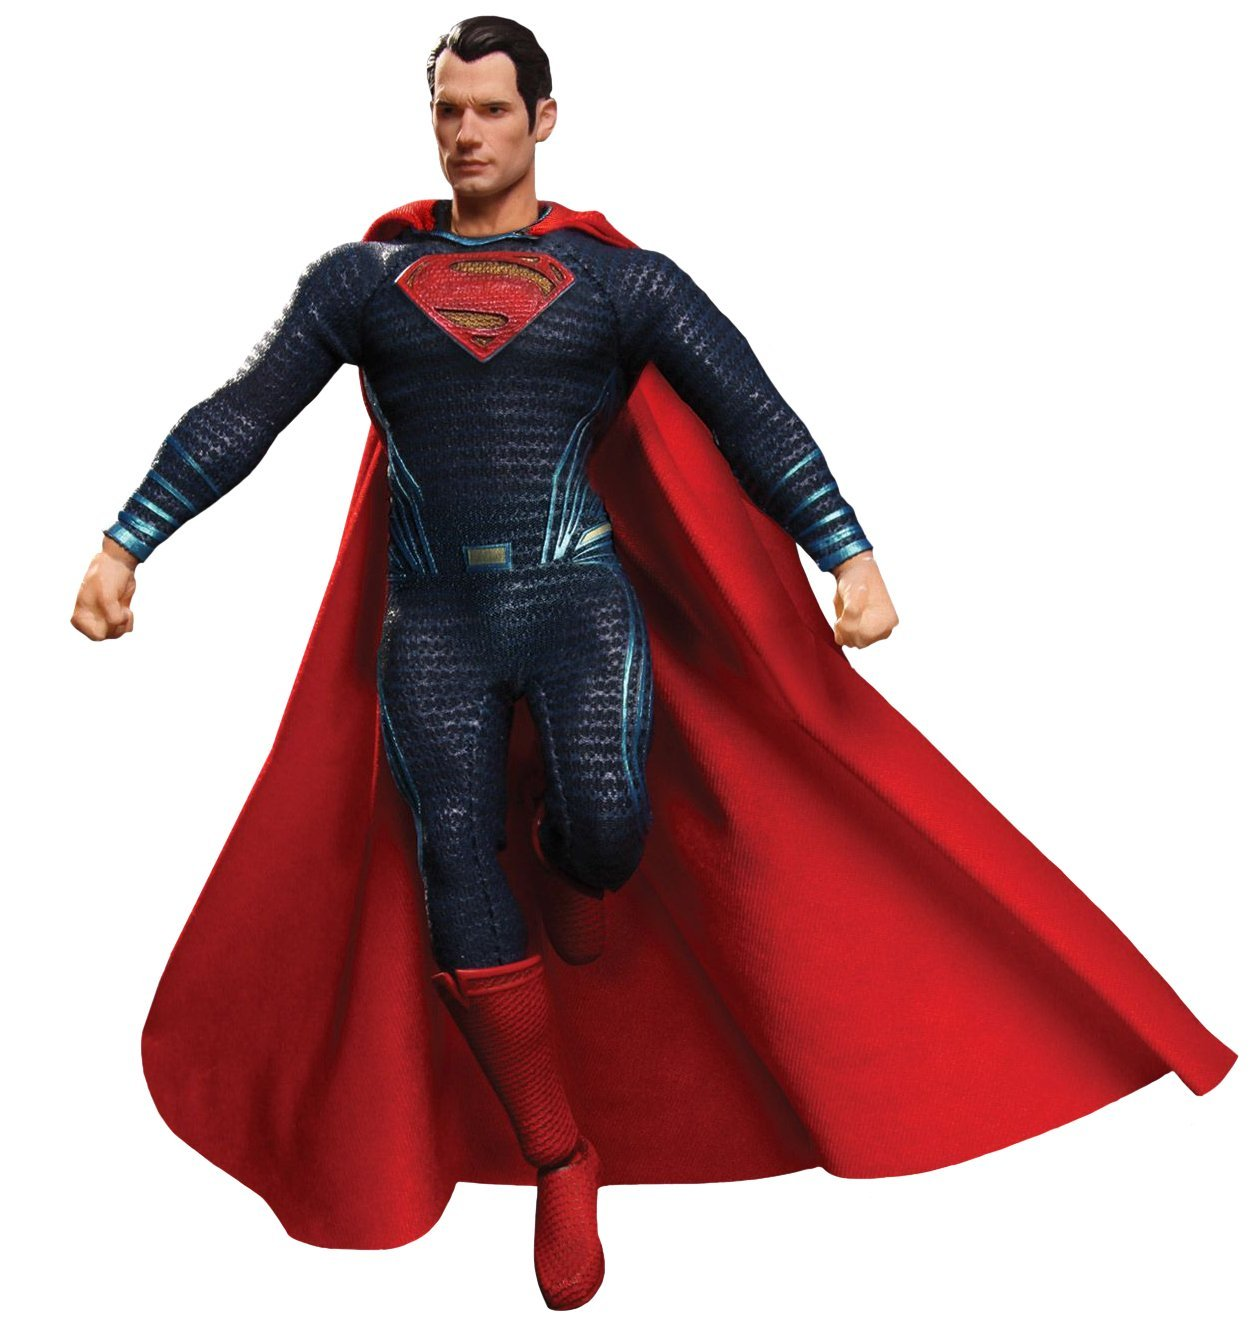 Batman vs. Superman One:12 Collective Superman Super Hero 6.5 Action Figure Toys for Boys with Retail Box hardin collective action